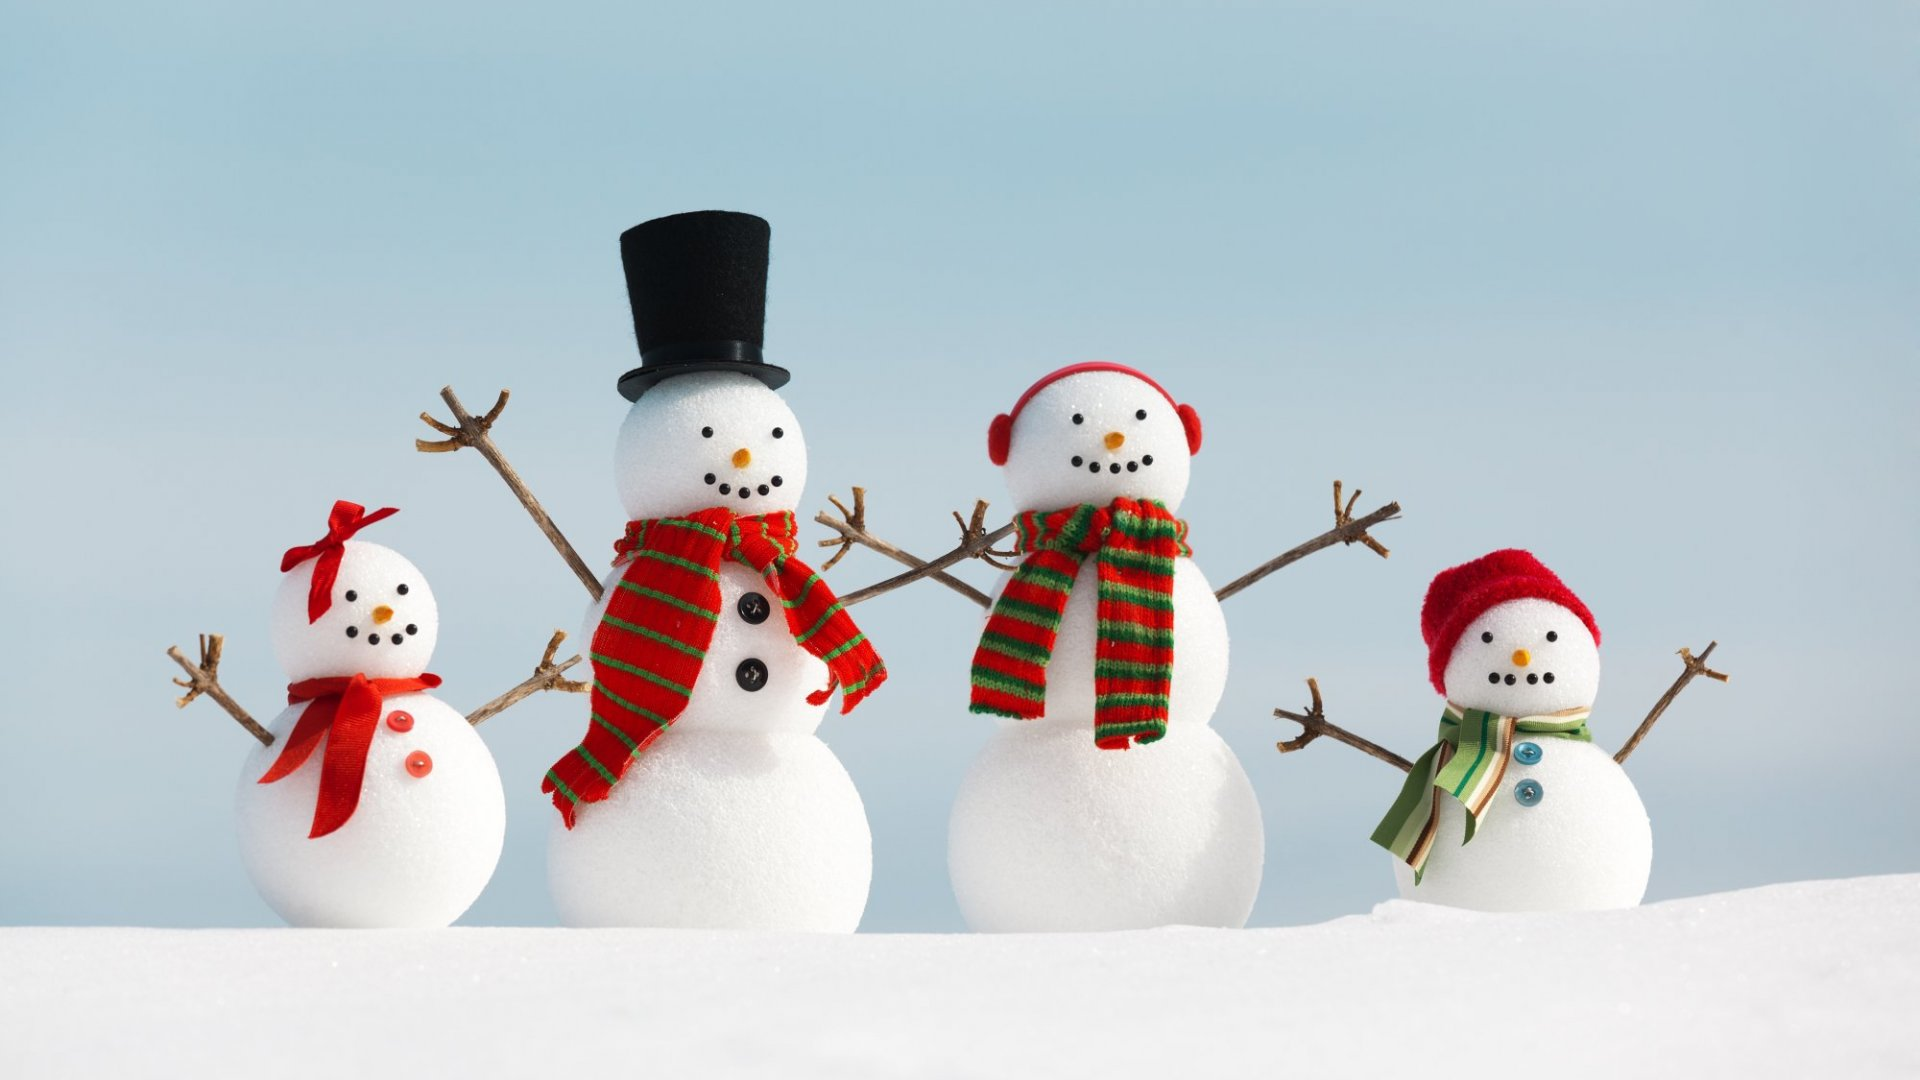 The Holidays Are Coming: How to Outsmart Increasing Ad Prices and Get Better Returns